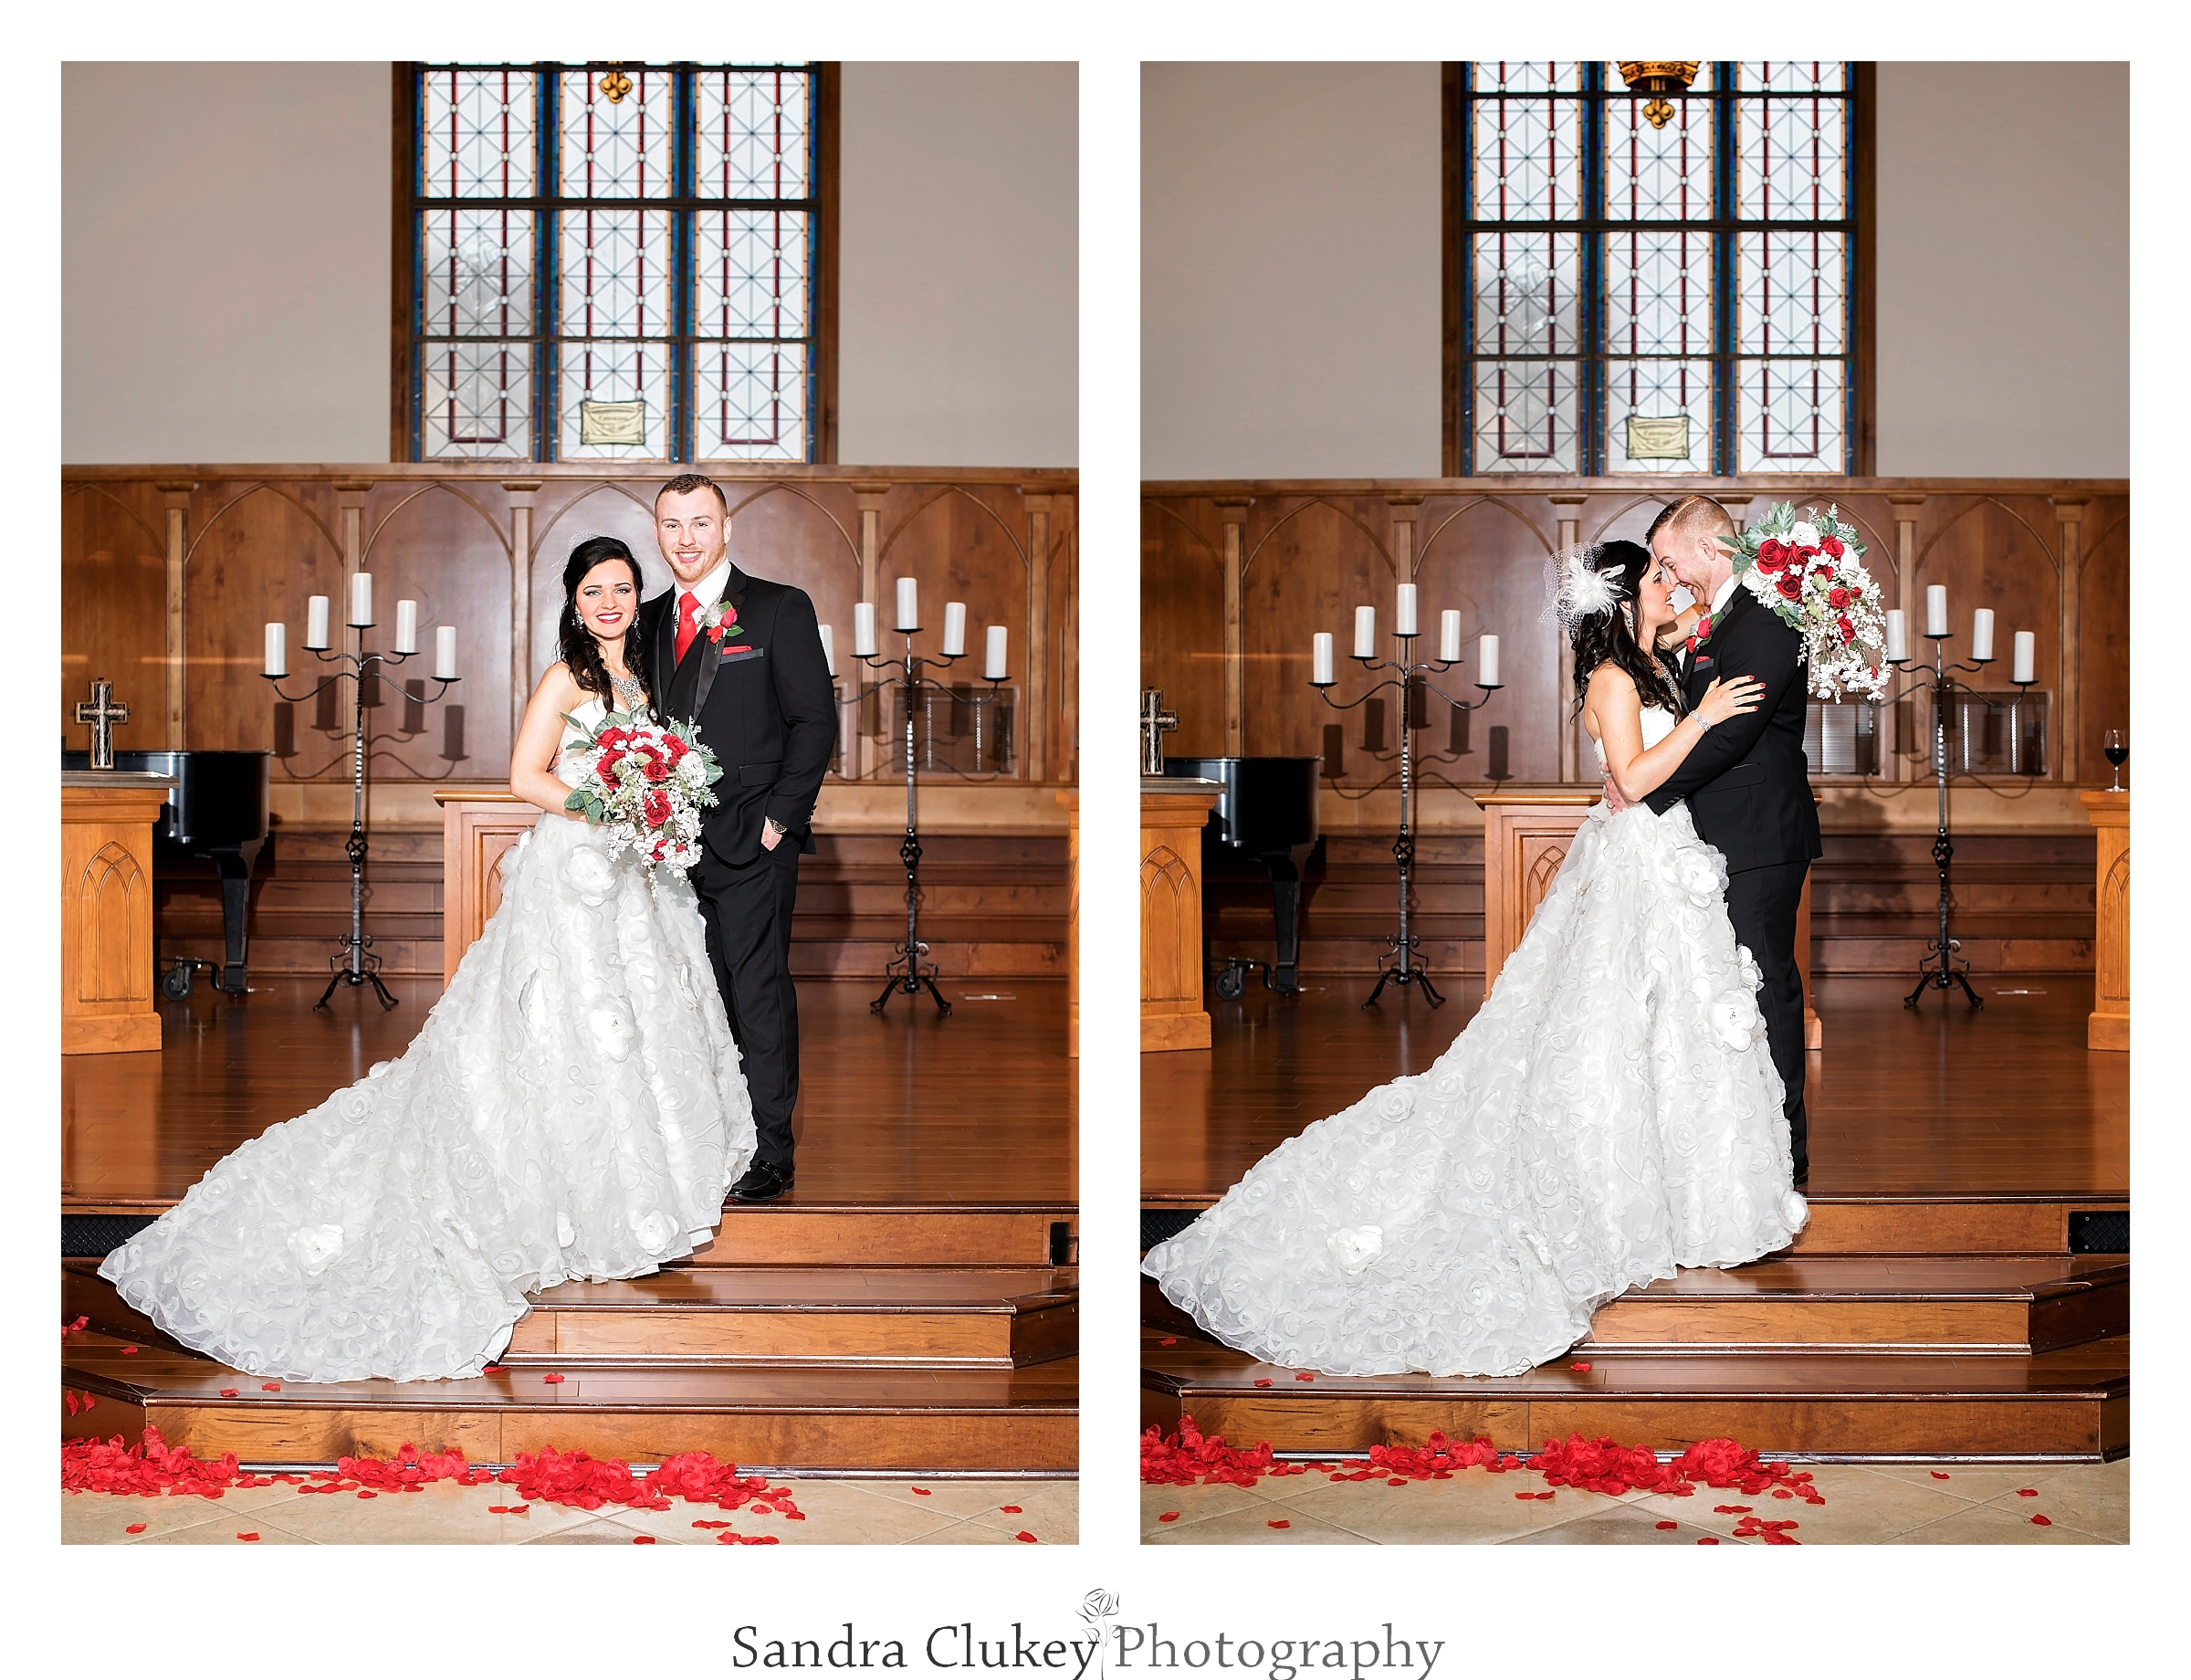 Formal wedding images of Bride and groom at  Lee University chapel, Cleveland TN.